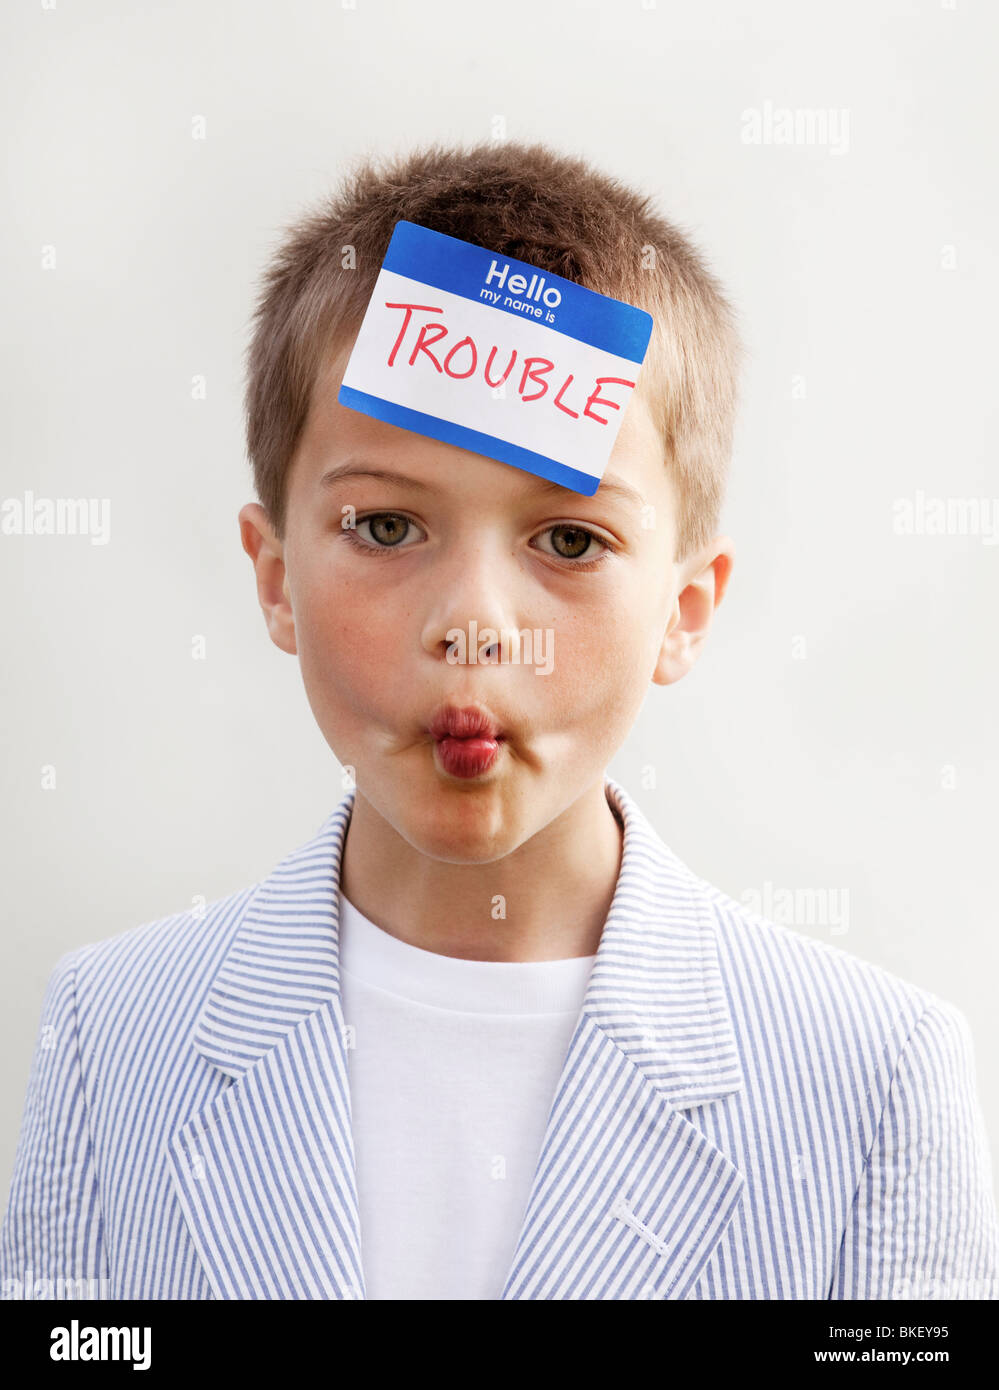 Trouble name tag on boys forehead - Stock Image